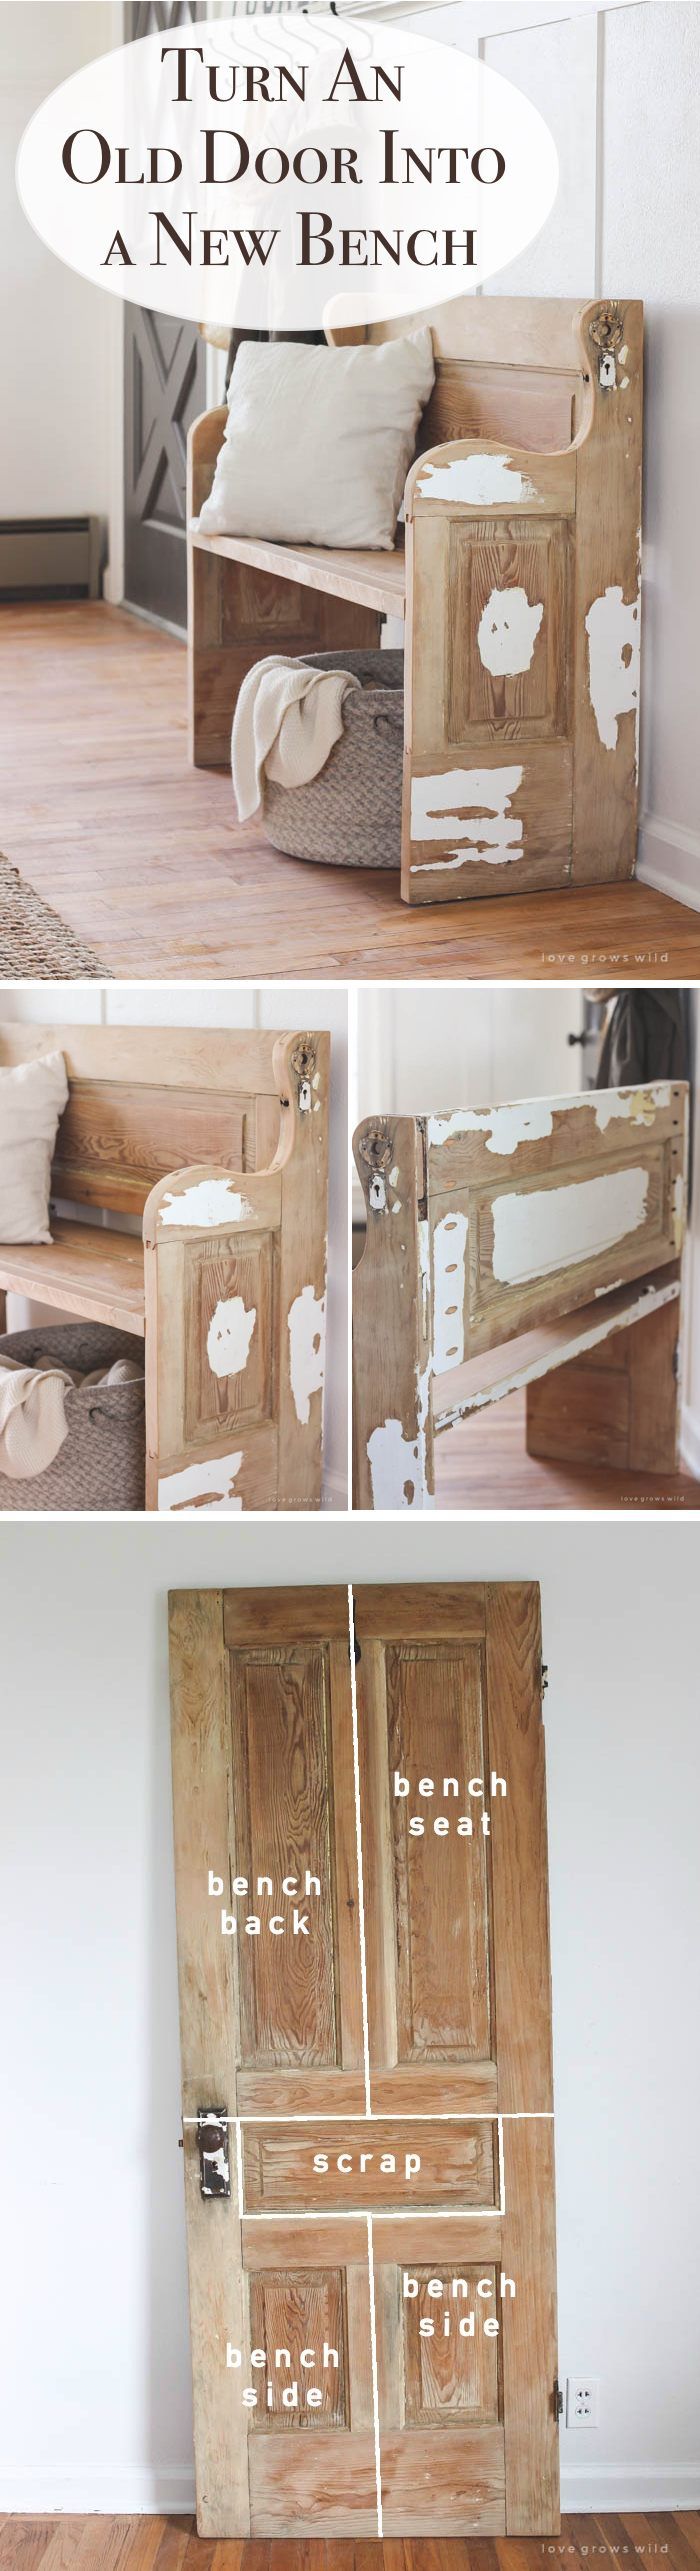 Superb 19 Creative Diy Project Ideas Of How To Reuse Old Doors Beutiful Home Inspiration Truamahrainfo